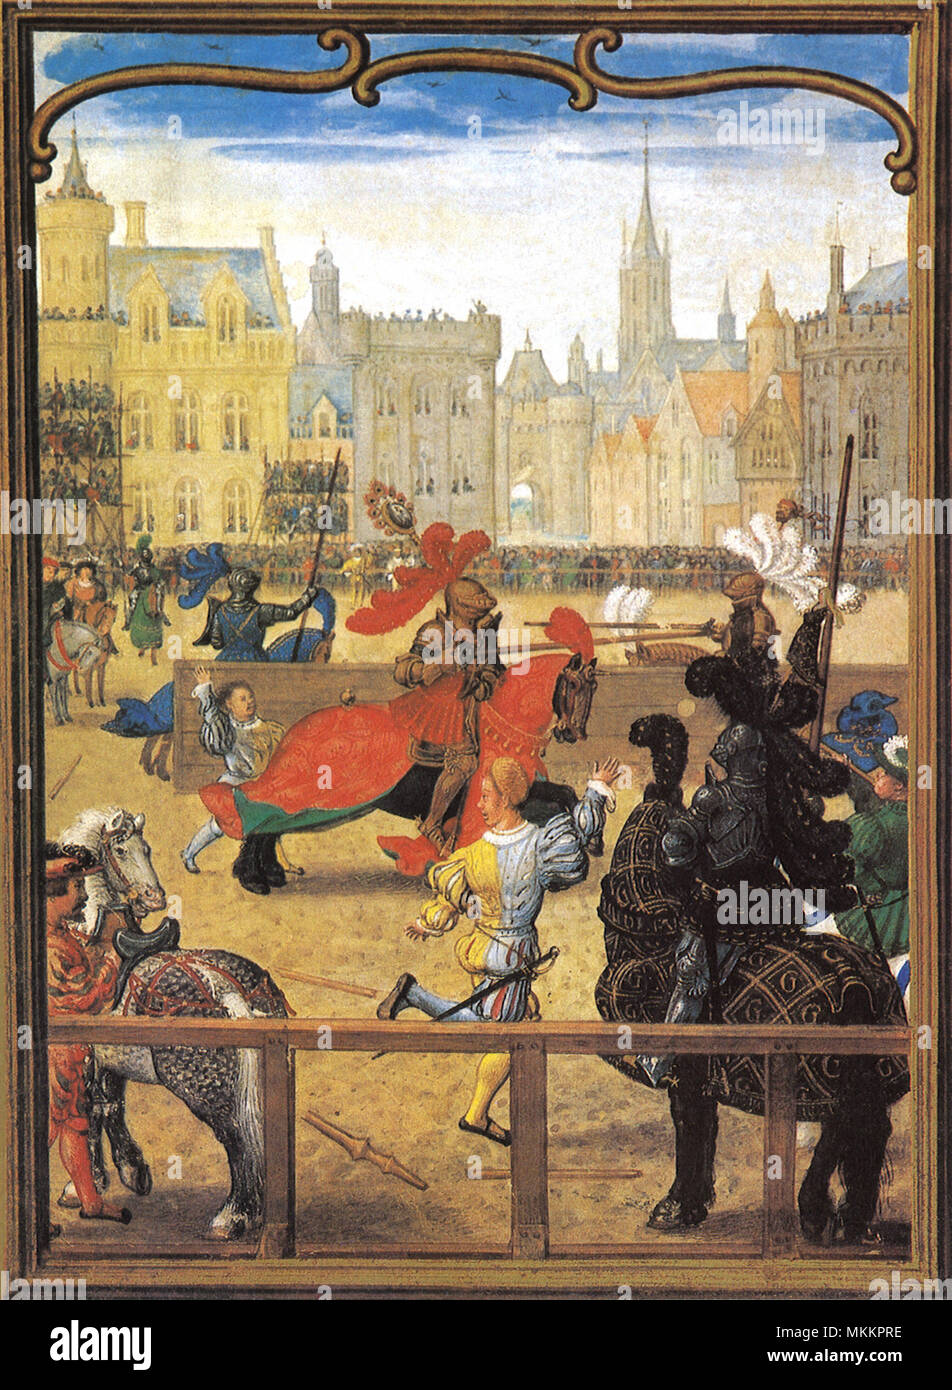 Jousting Knights 1550 - Stock Image